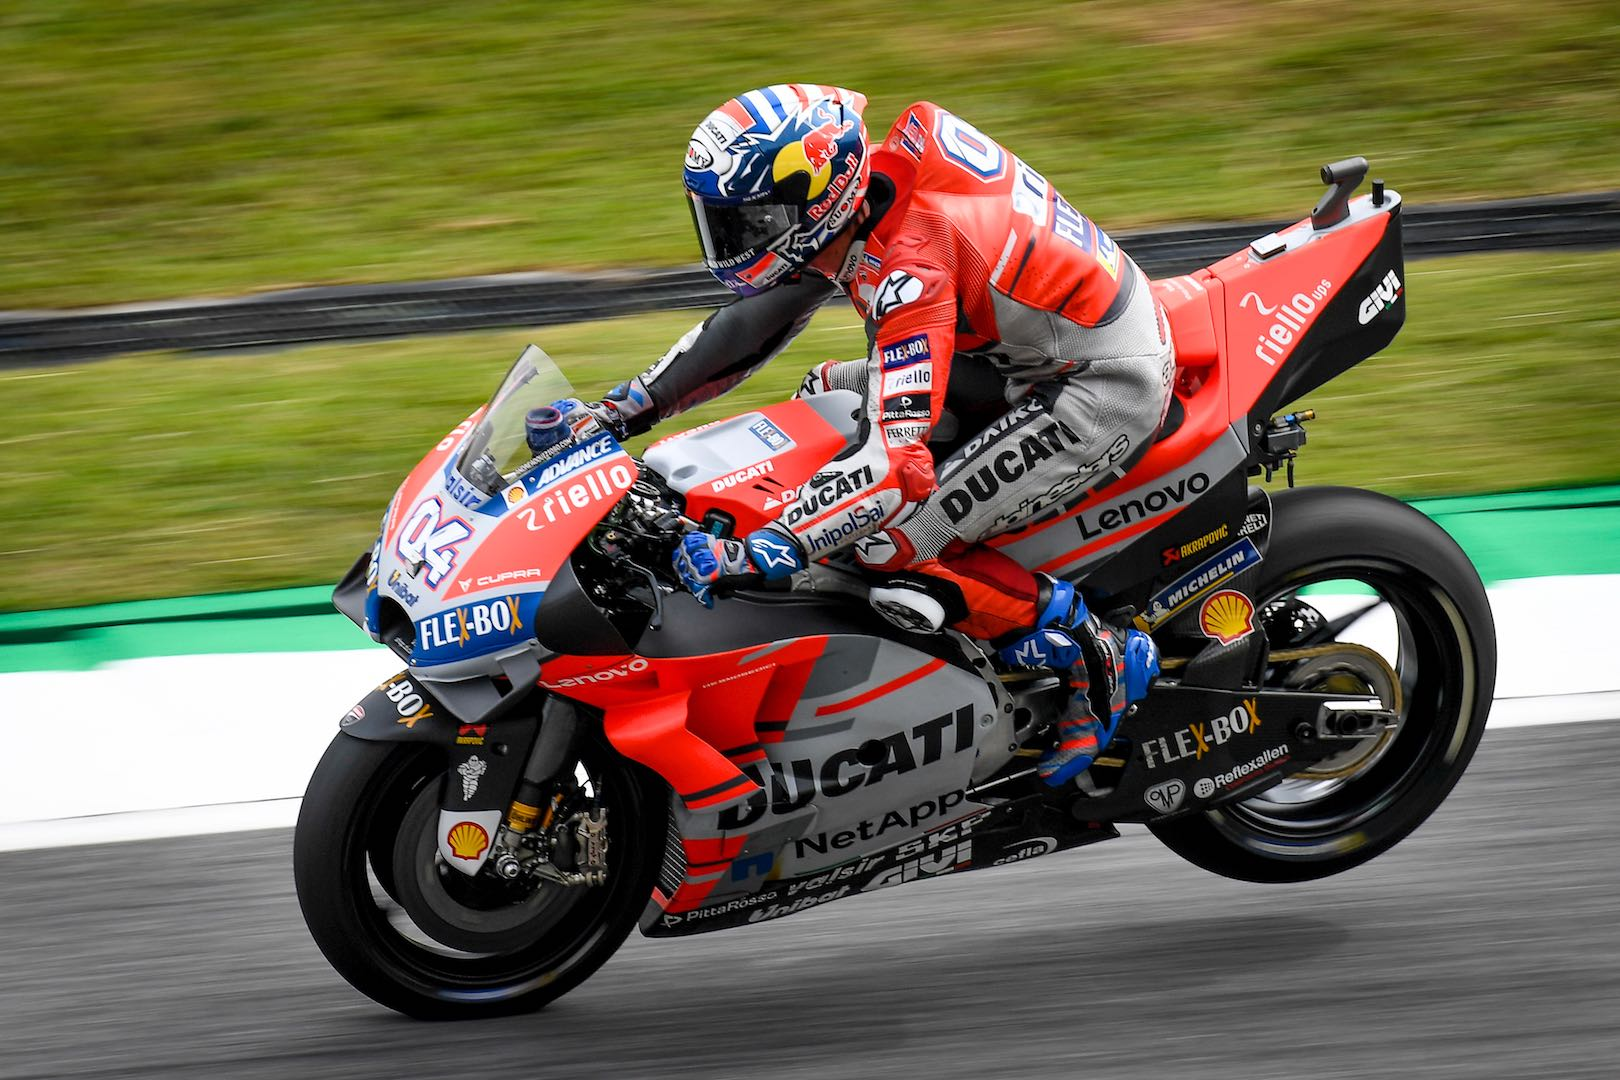 Top 3 Within a Tenth at Malaysia MotoGP Friday (Suzuki's Rins Quickest) Ducati Andrea Dovizioso